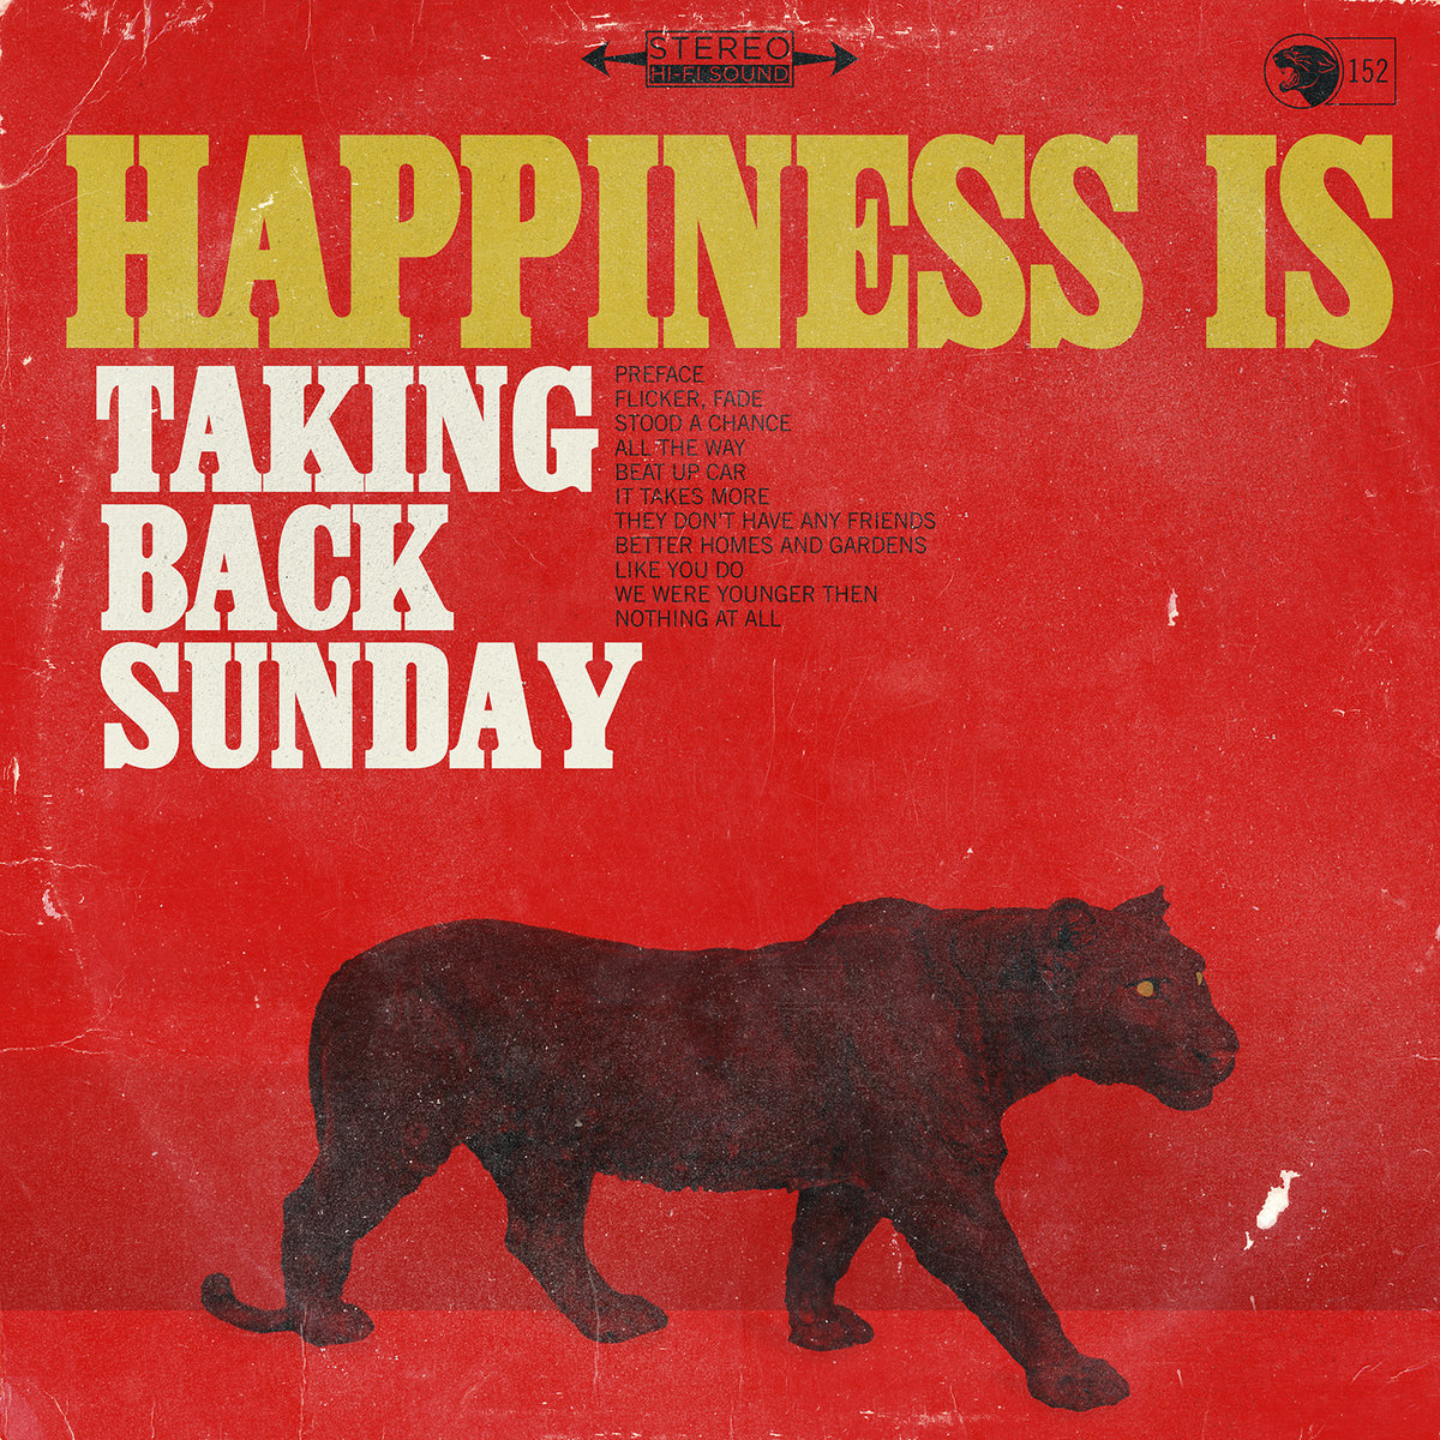 TAKING BACK SUNDAY - Happiness Is LP